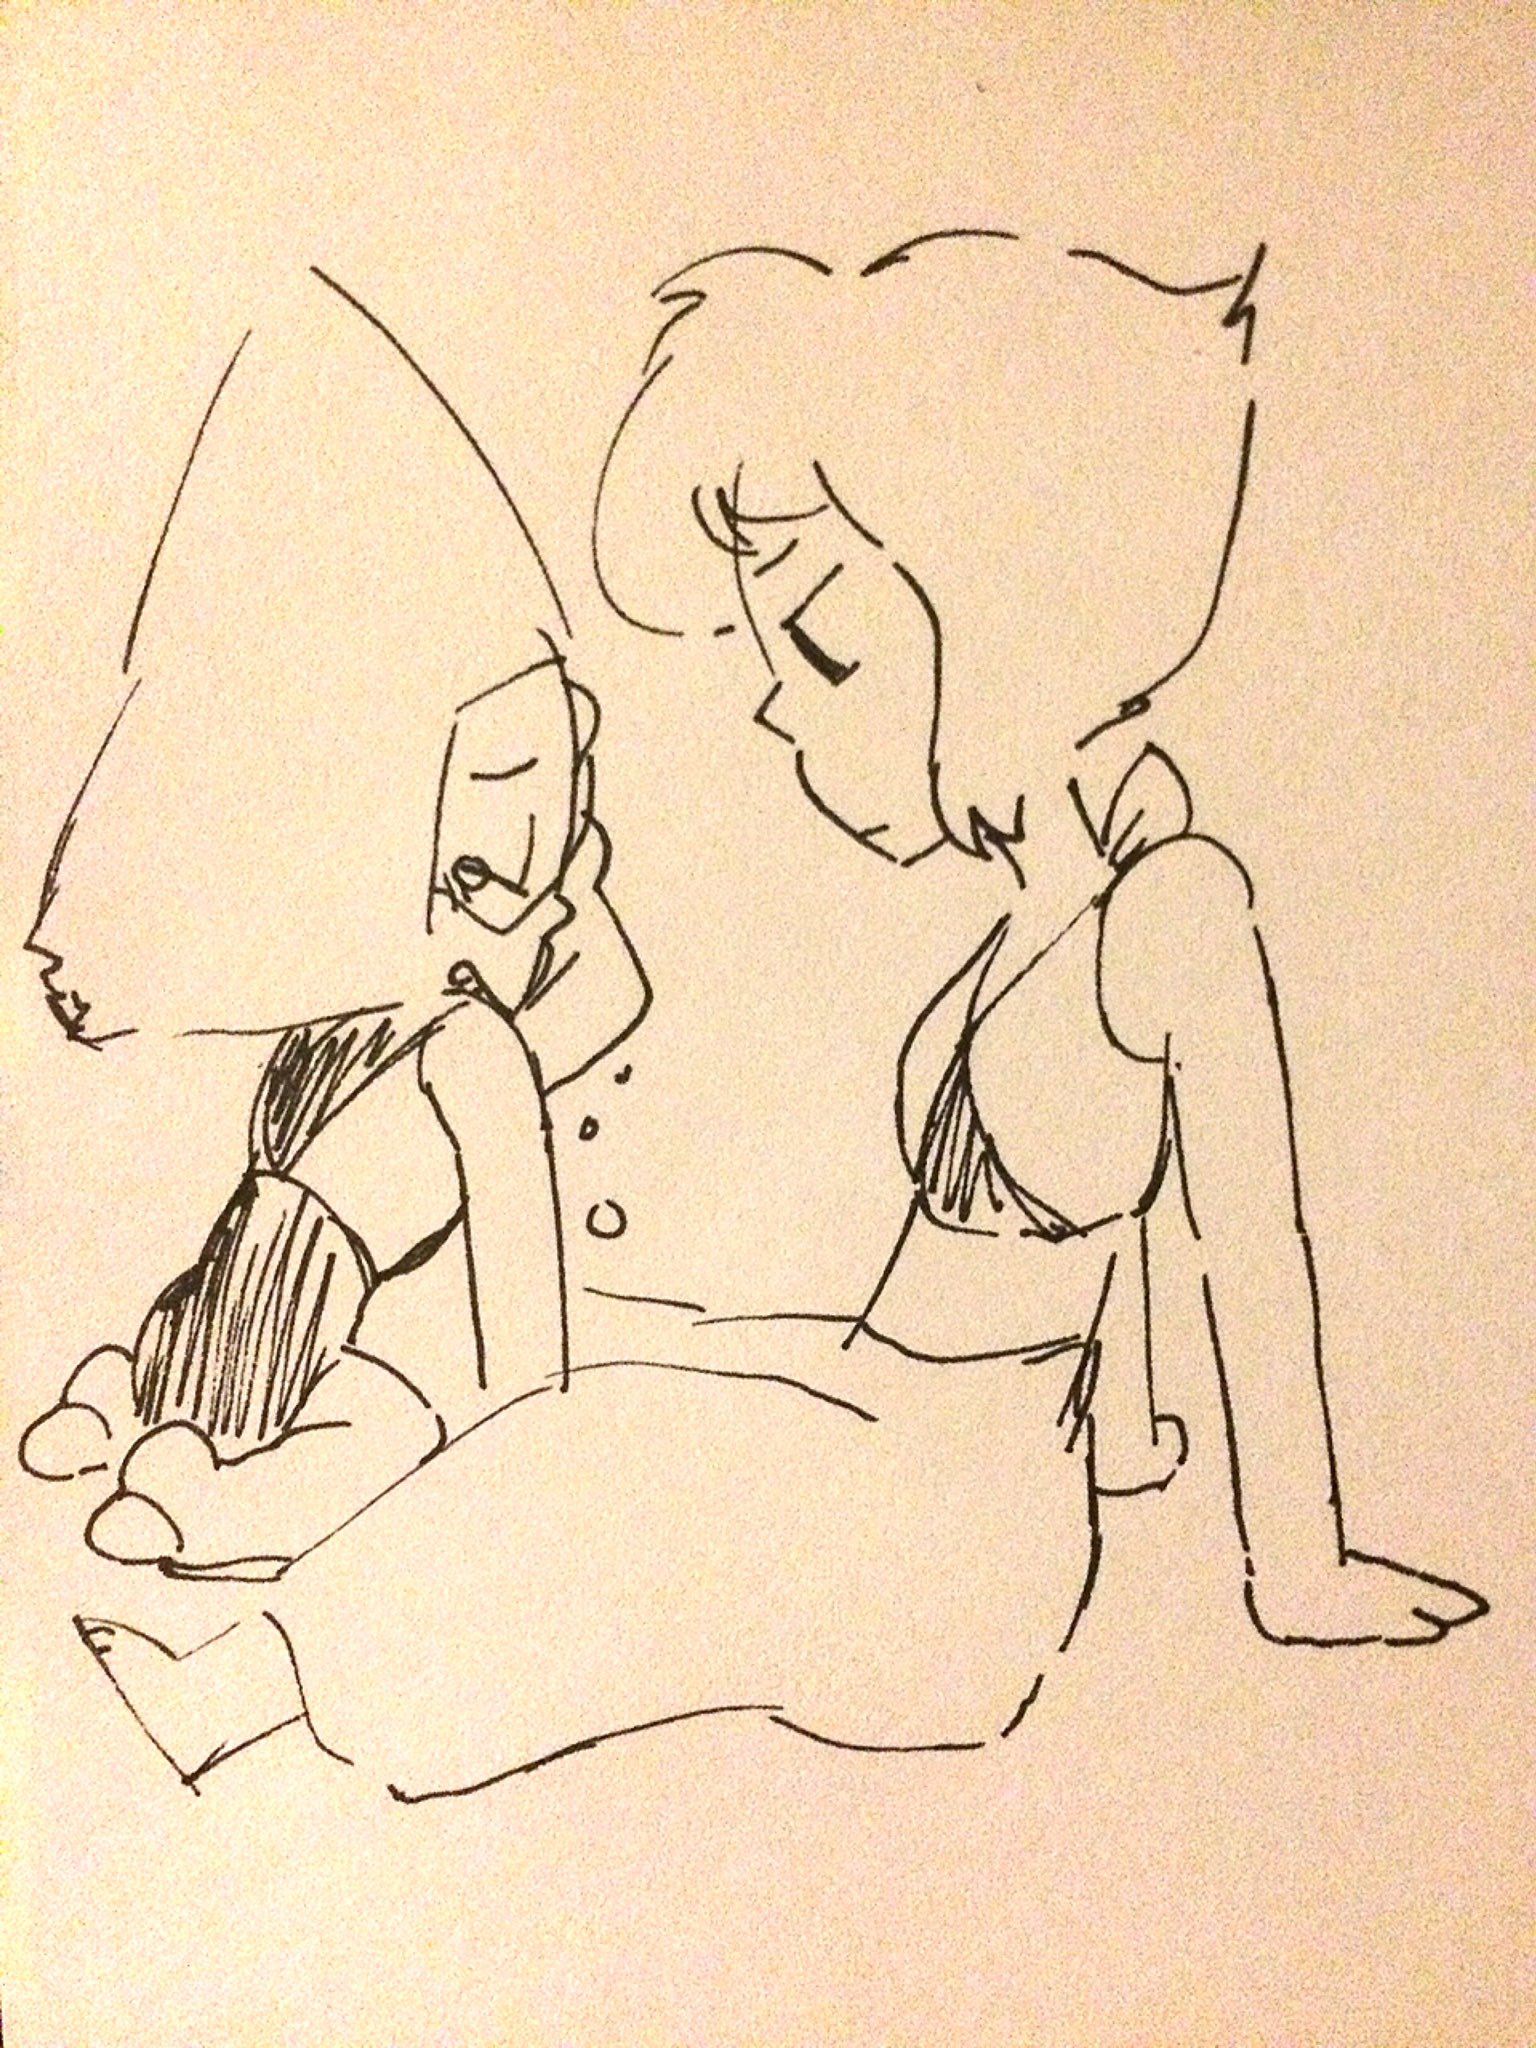 """""I'm just missin Homeworld again Lazuli! Nothing to worry about!"" ... ""Aha..ah.. why won't the tears stop?.. Weird!"""""